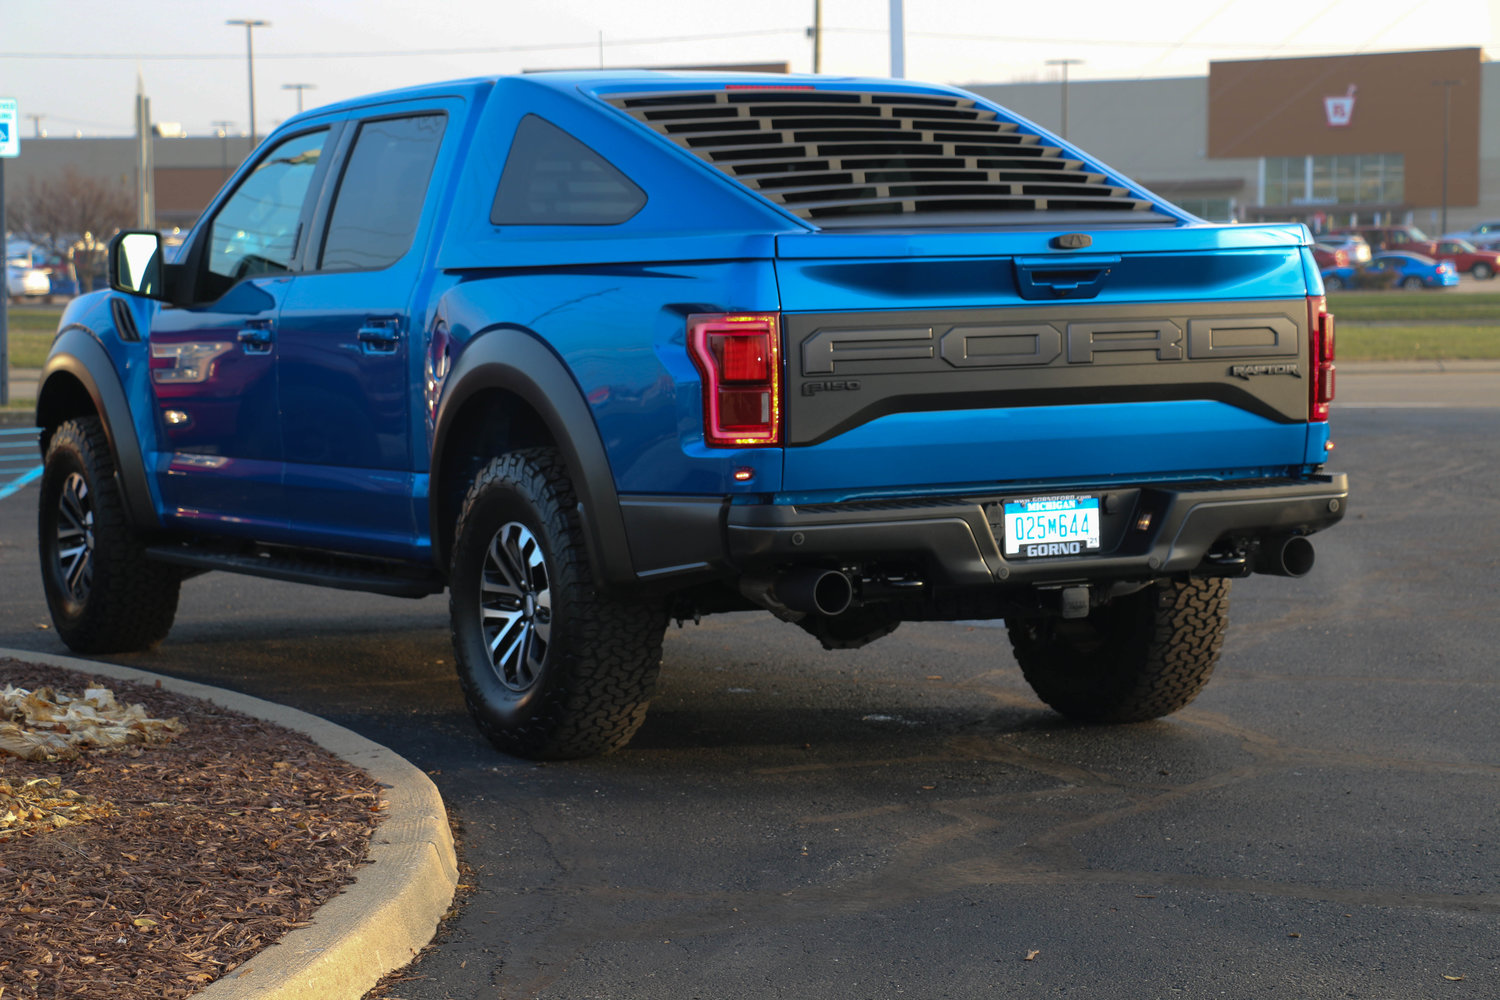 Ford F150 Tail Lights >> Pat Callinan's 4X4 Adventures | The Essence of 4X4 ...